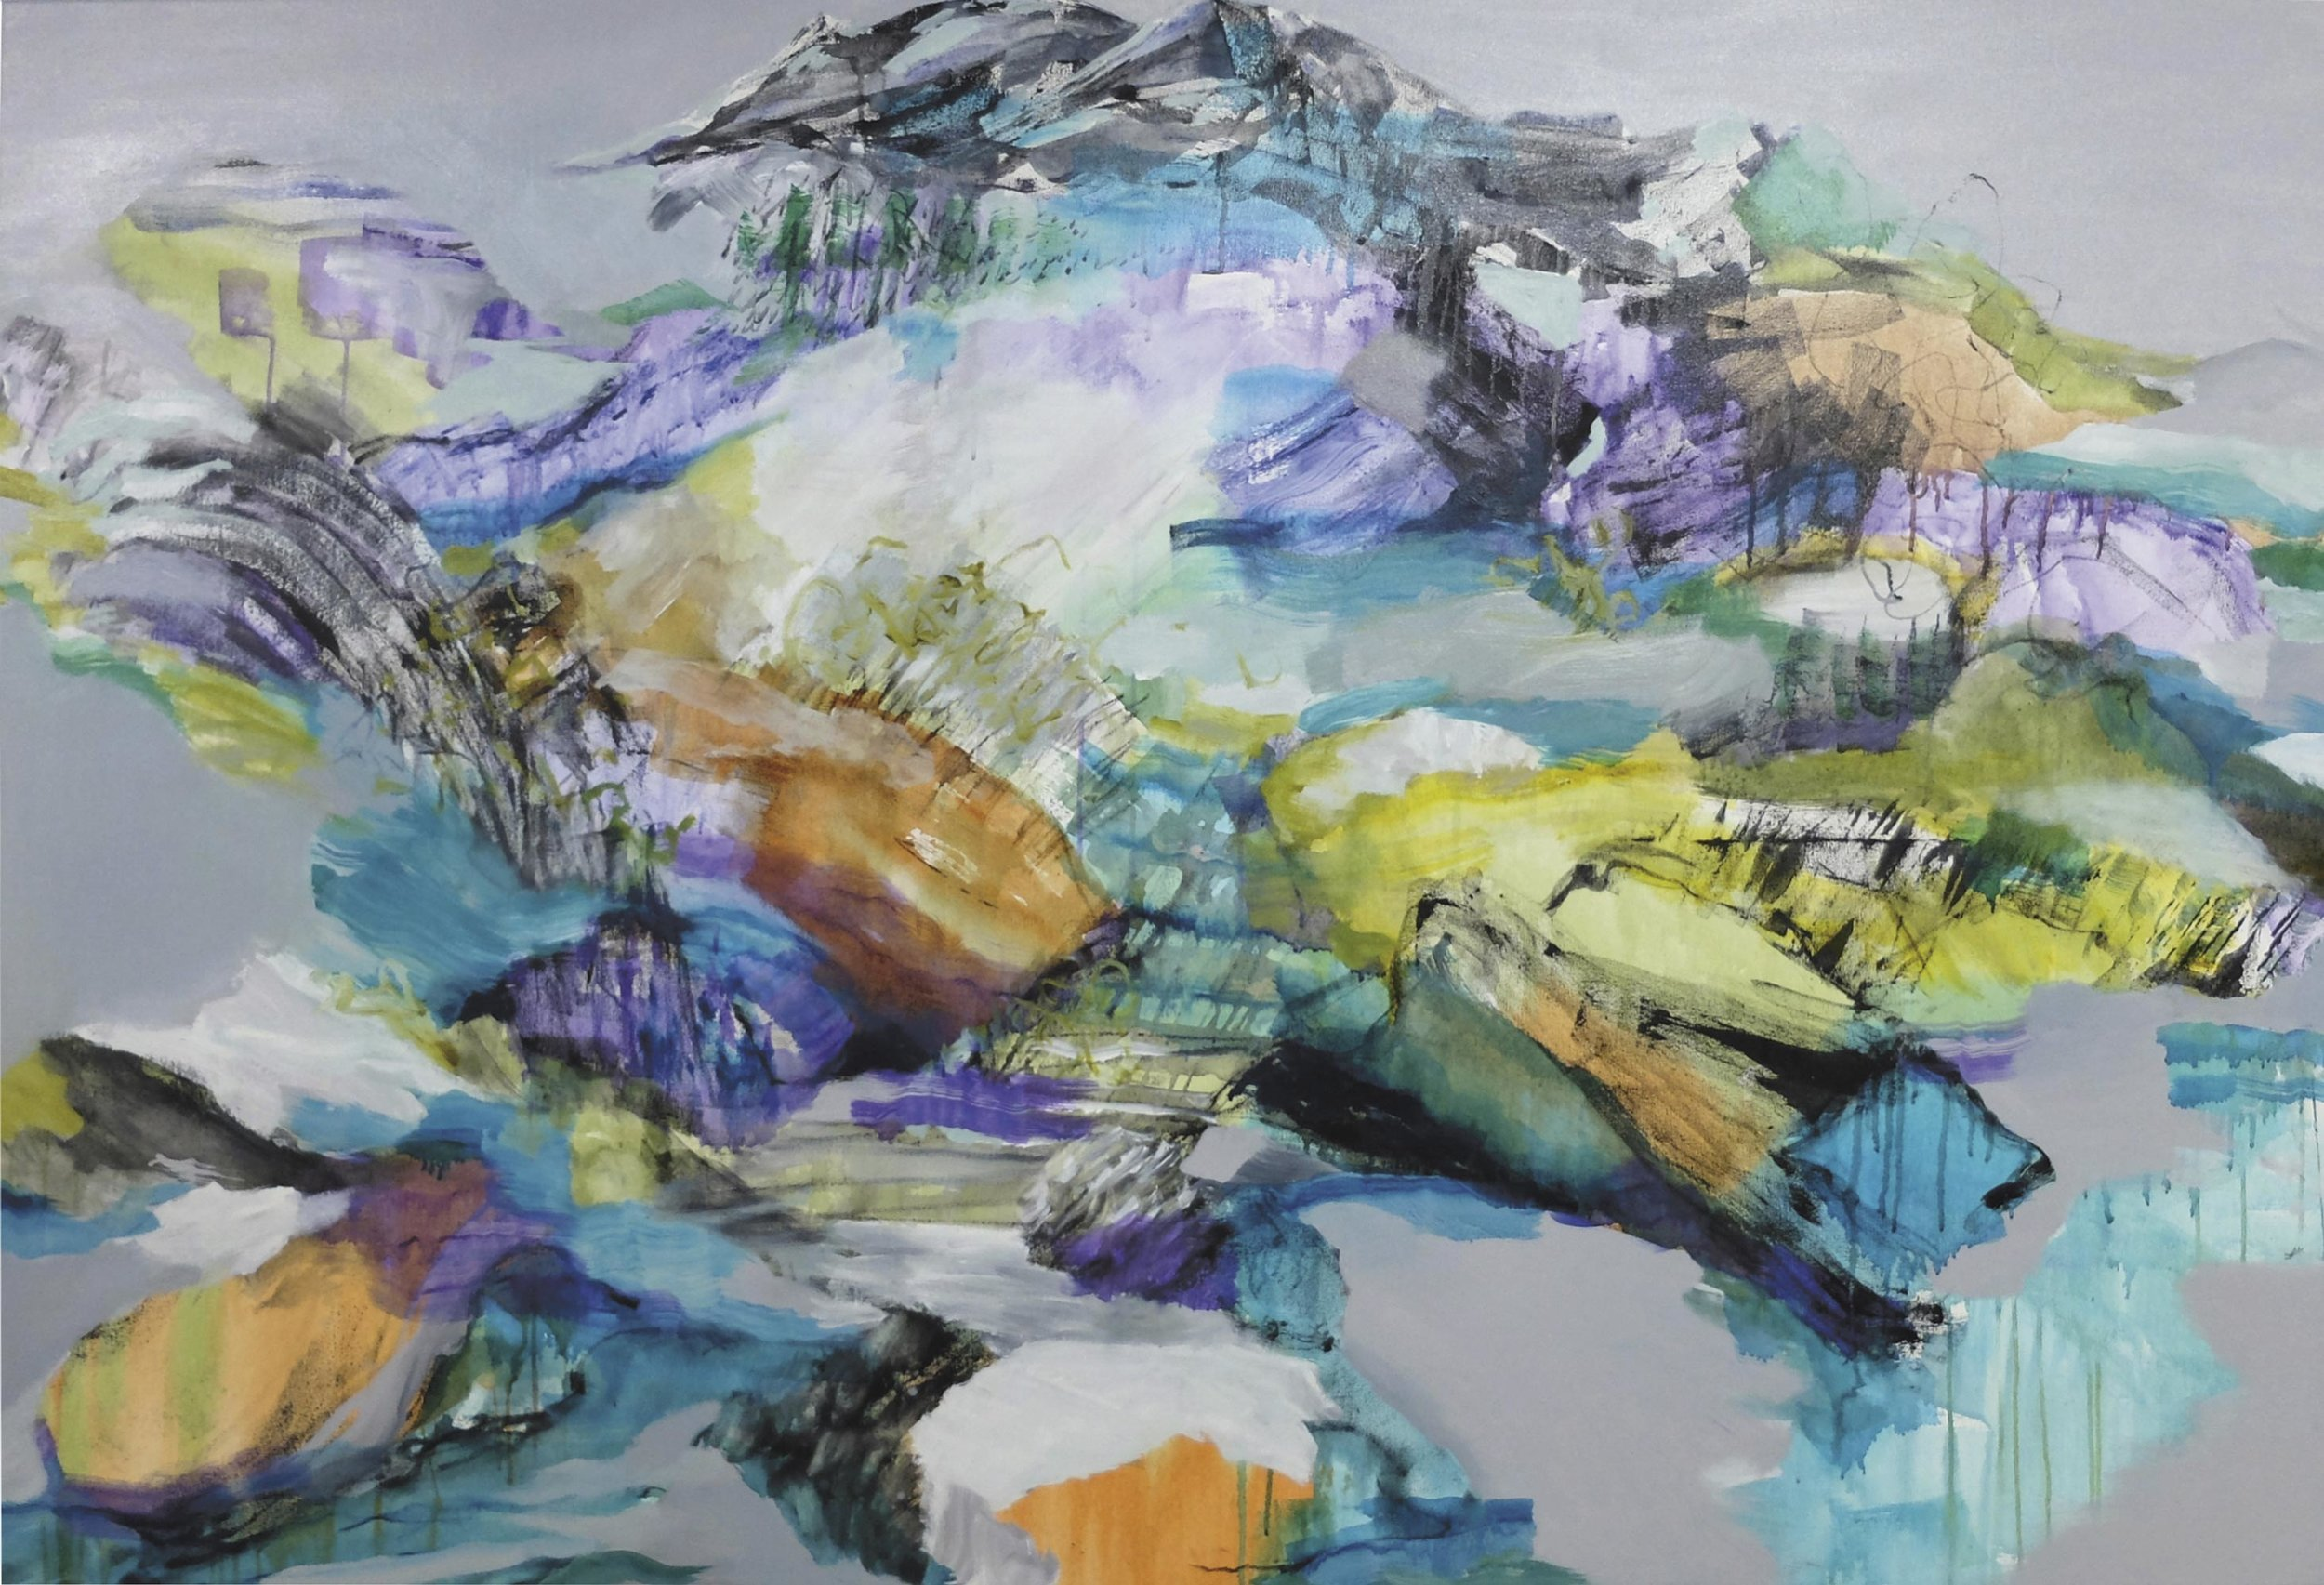 Rocks to River (Blakehurst)  – oil and acrylic on canvas, 122 x 182cm. A commission for the St George Hospital Cancer Unit.